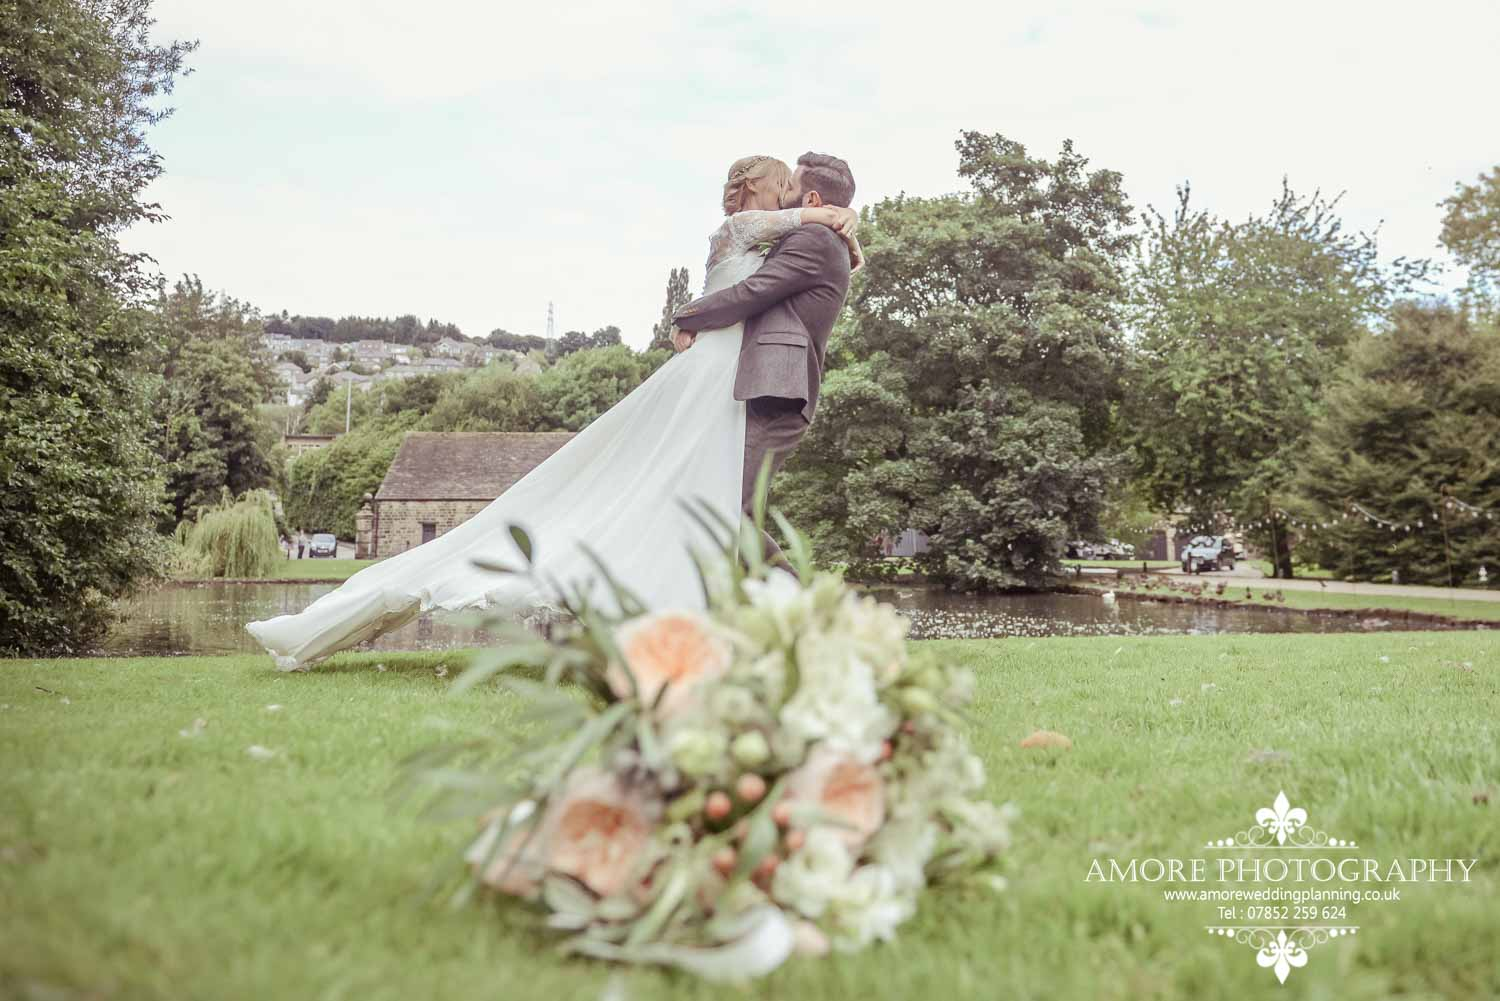 Vintage Wedding Photographer Wakefield North Yorkshire Leeds Wedding Photography Vintage Rustic Barn Weddings (112)